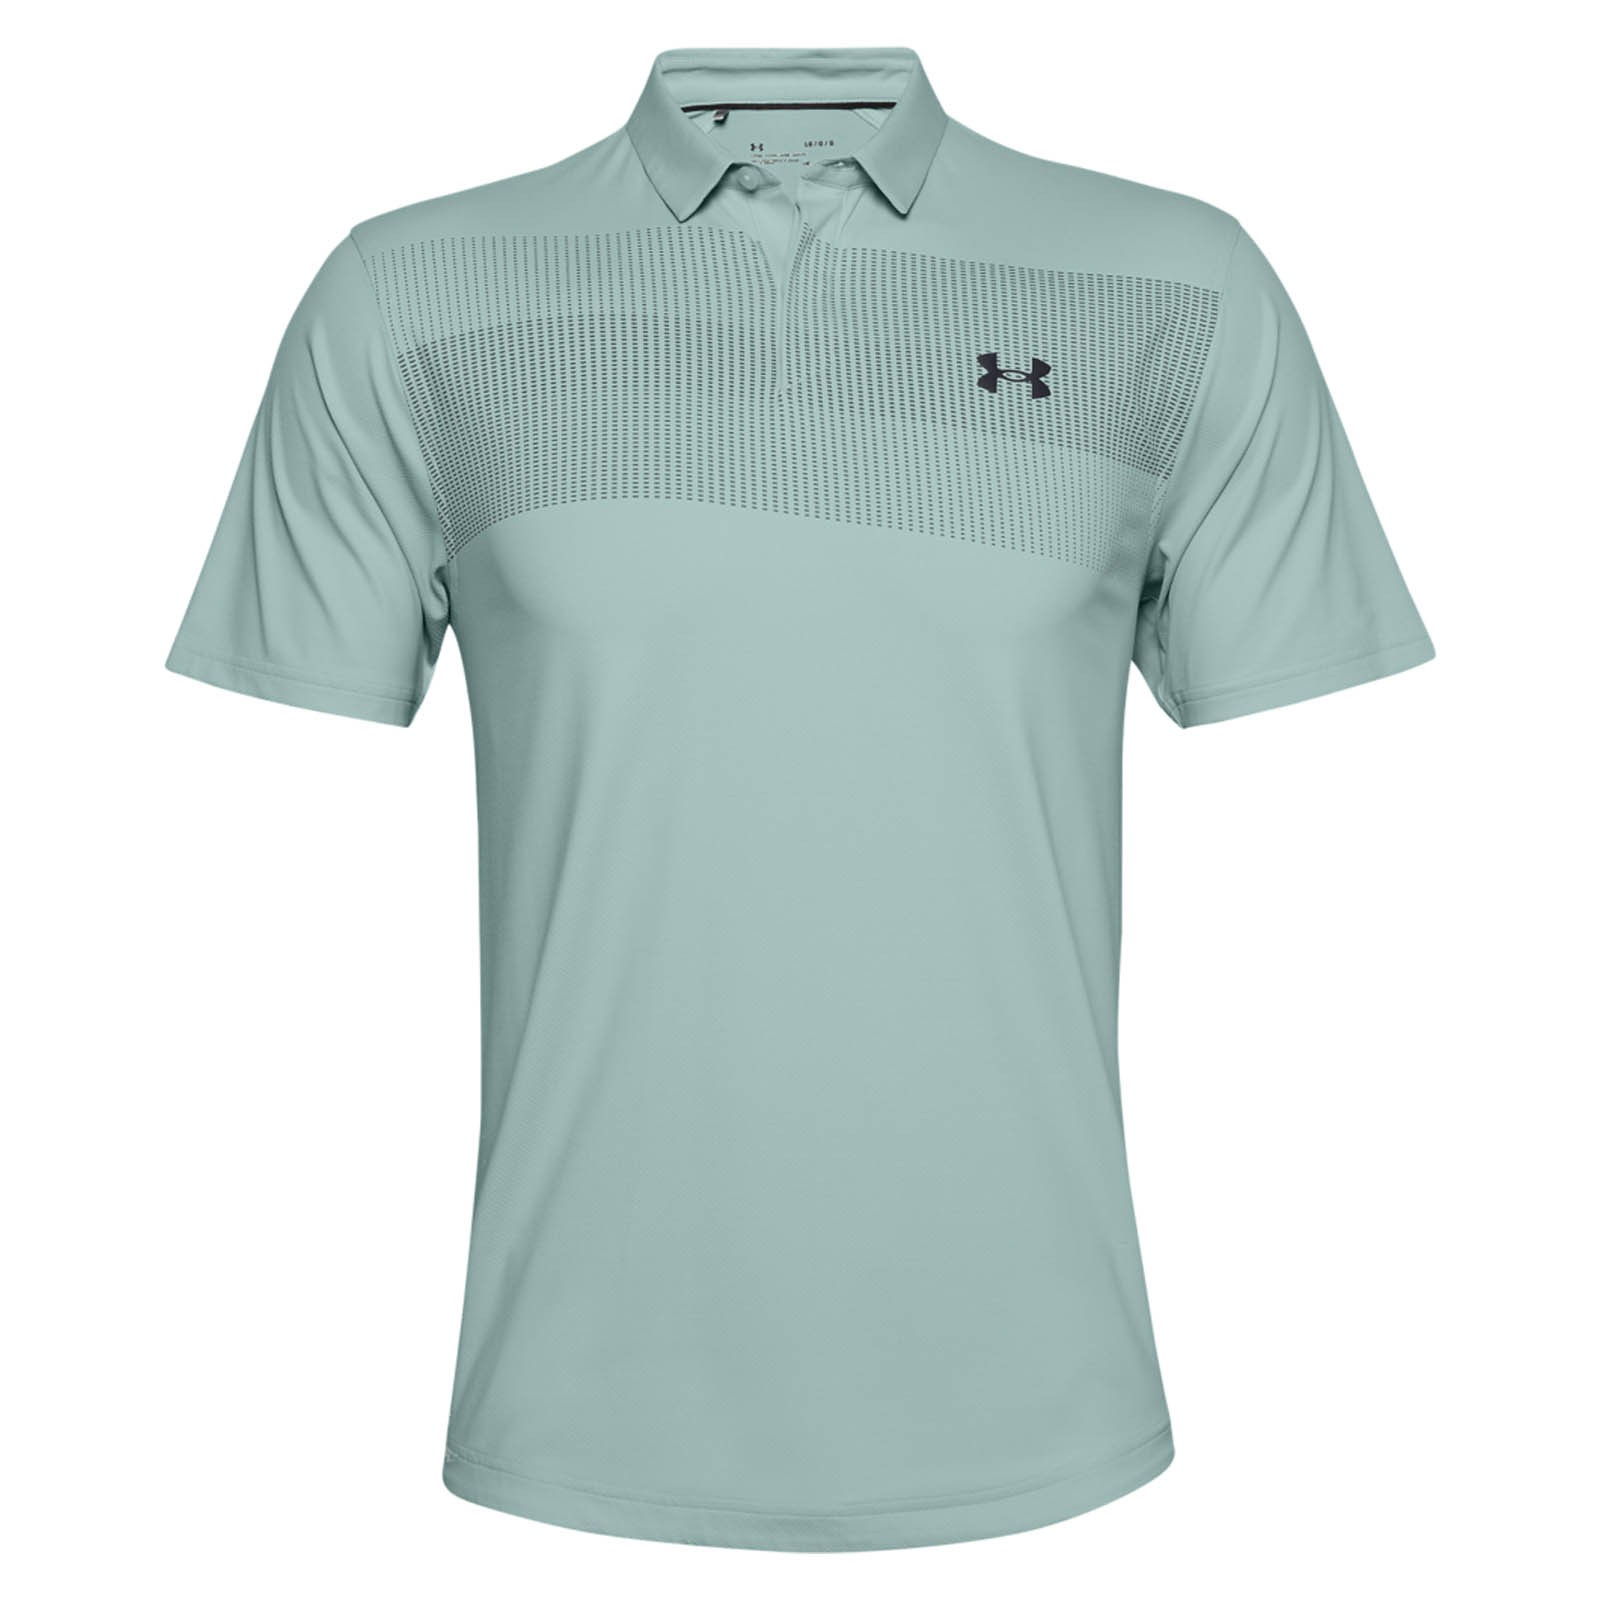 Under Armour Isochill Chest Graphic Polo